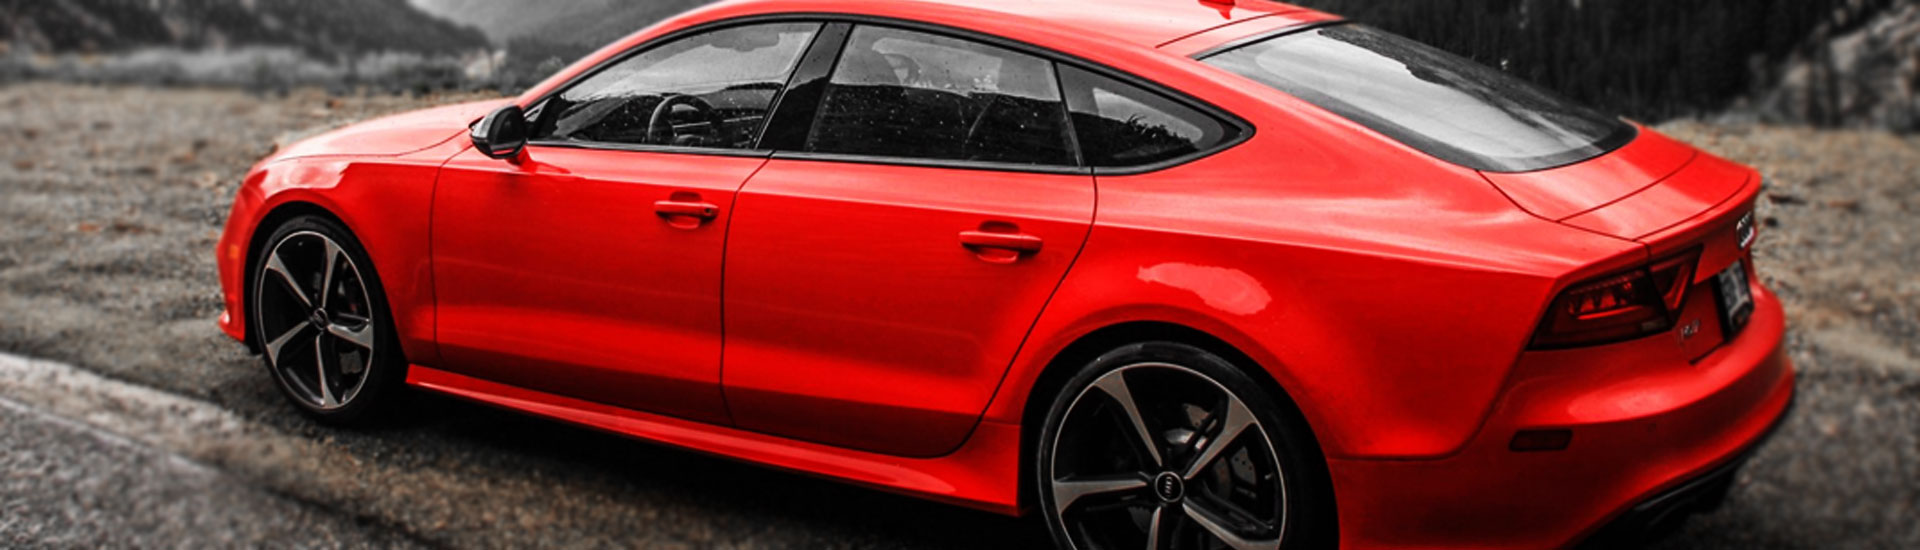 Audi RS7 Window Tint